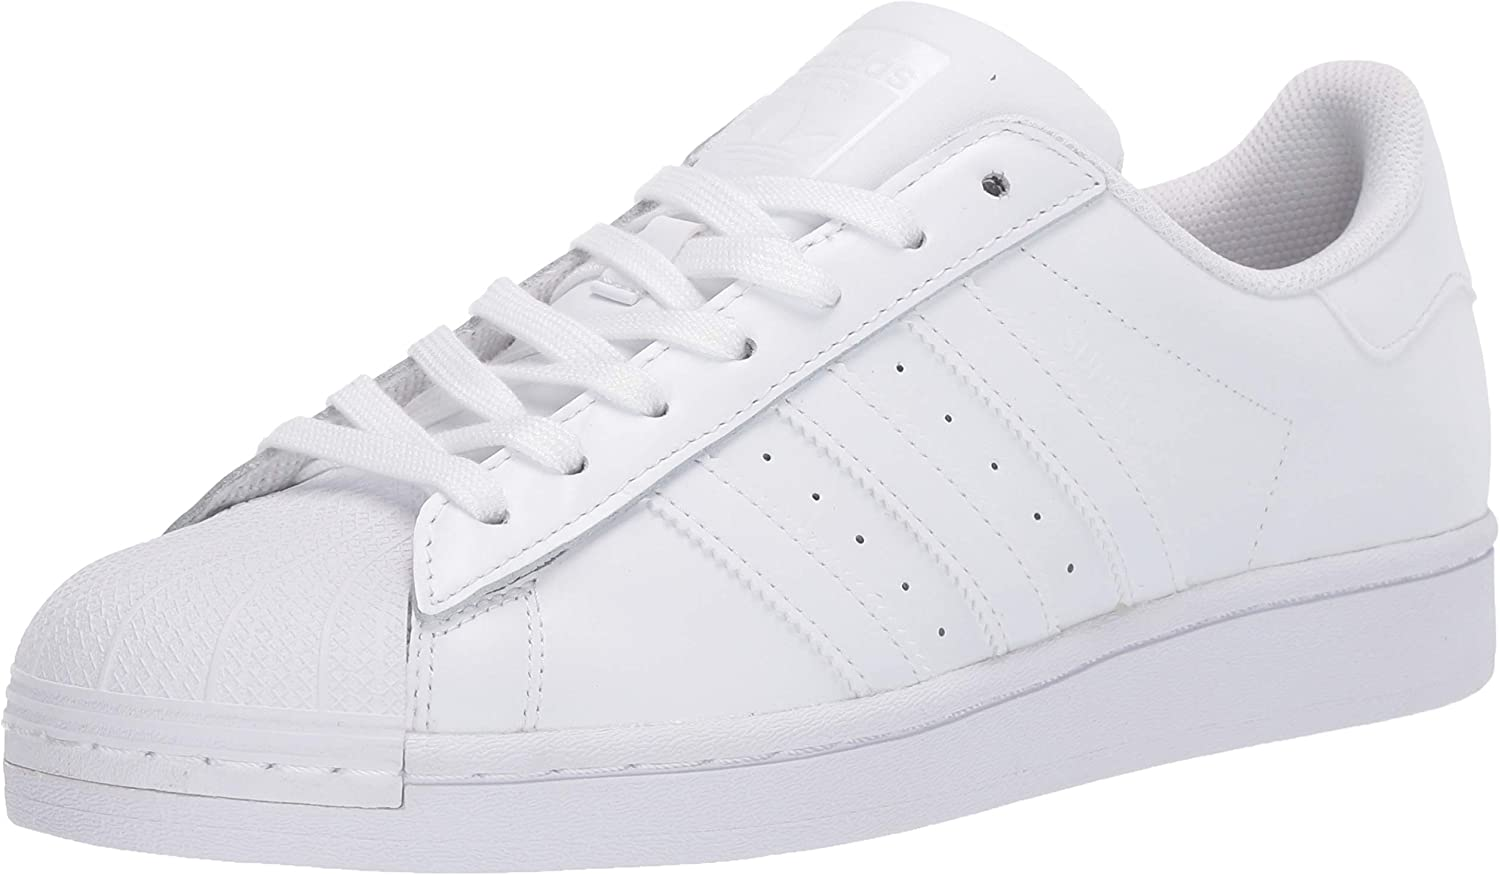 adidas Superstar Ii, Basket mode homme: ADIDAS: